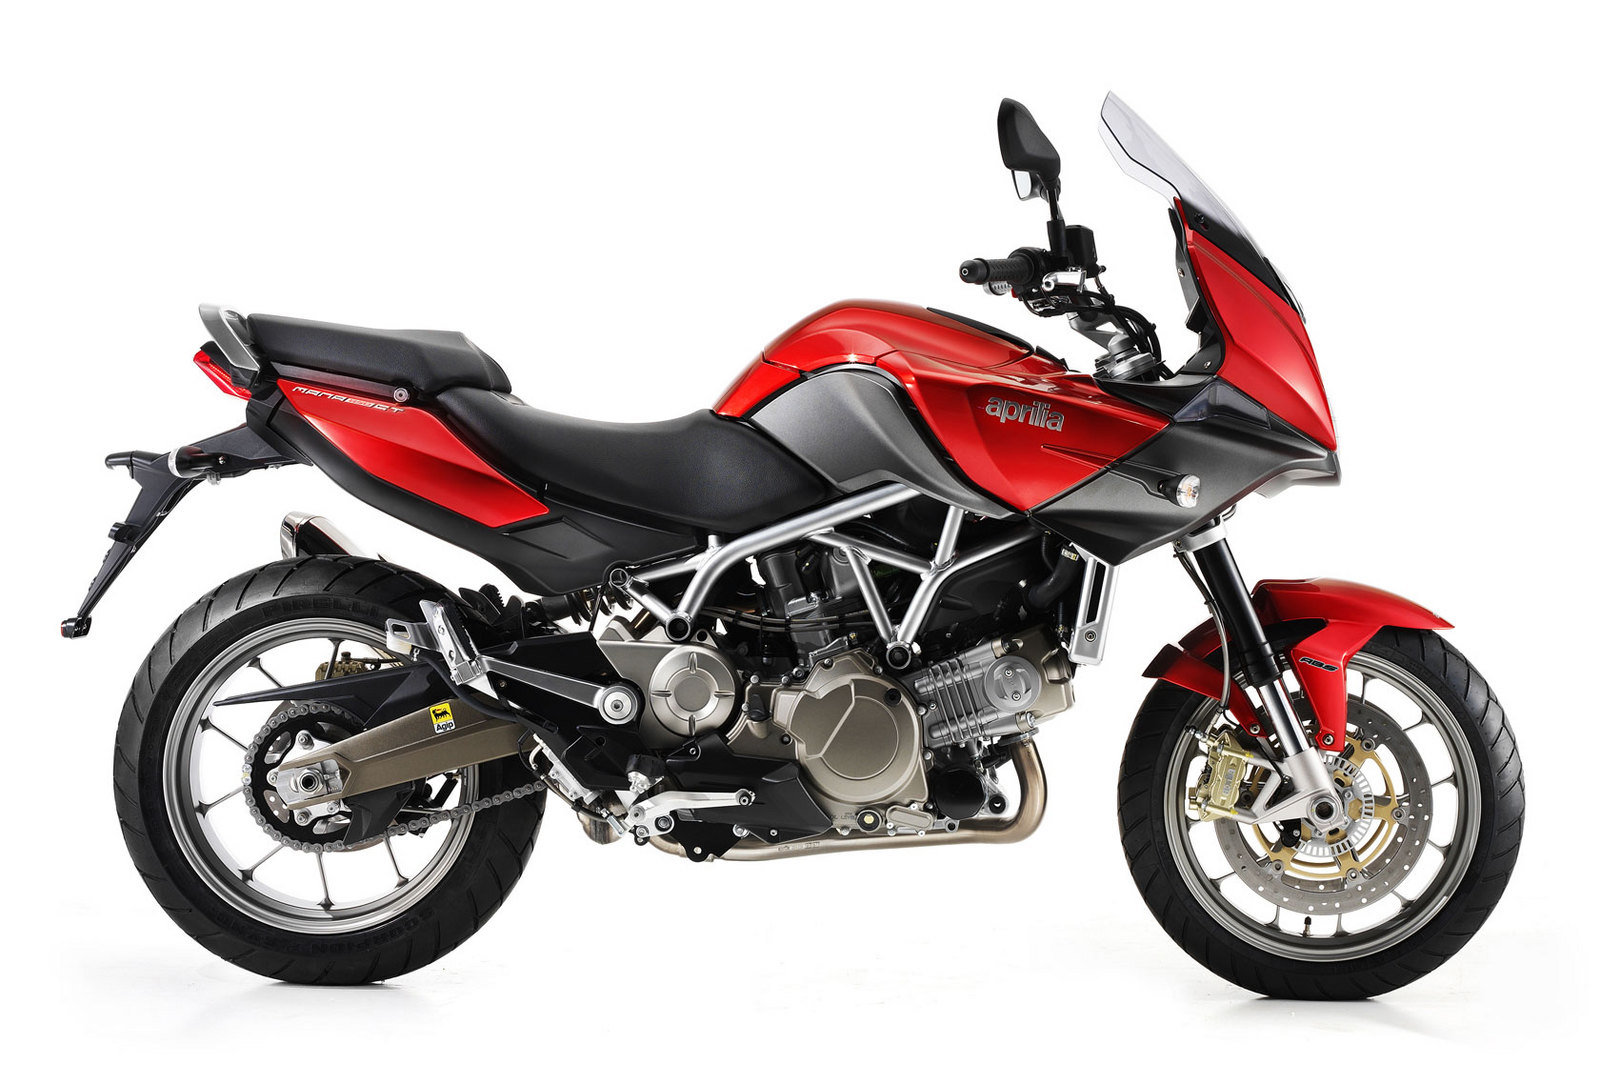 2013 Aprilia Mana 850 Gt Abs Picture 481245 Motorcycle